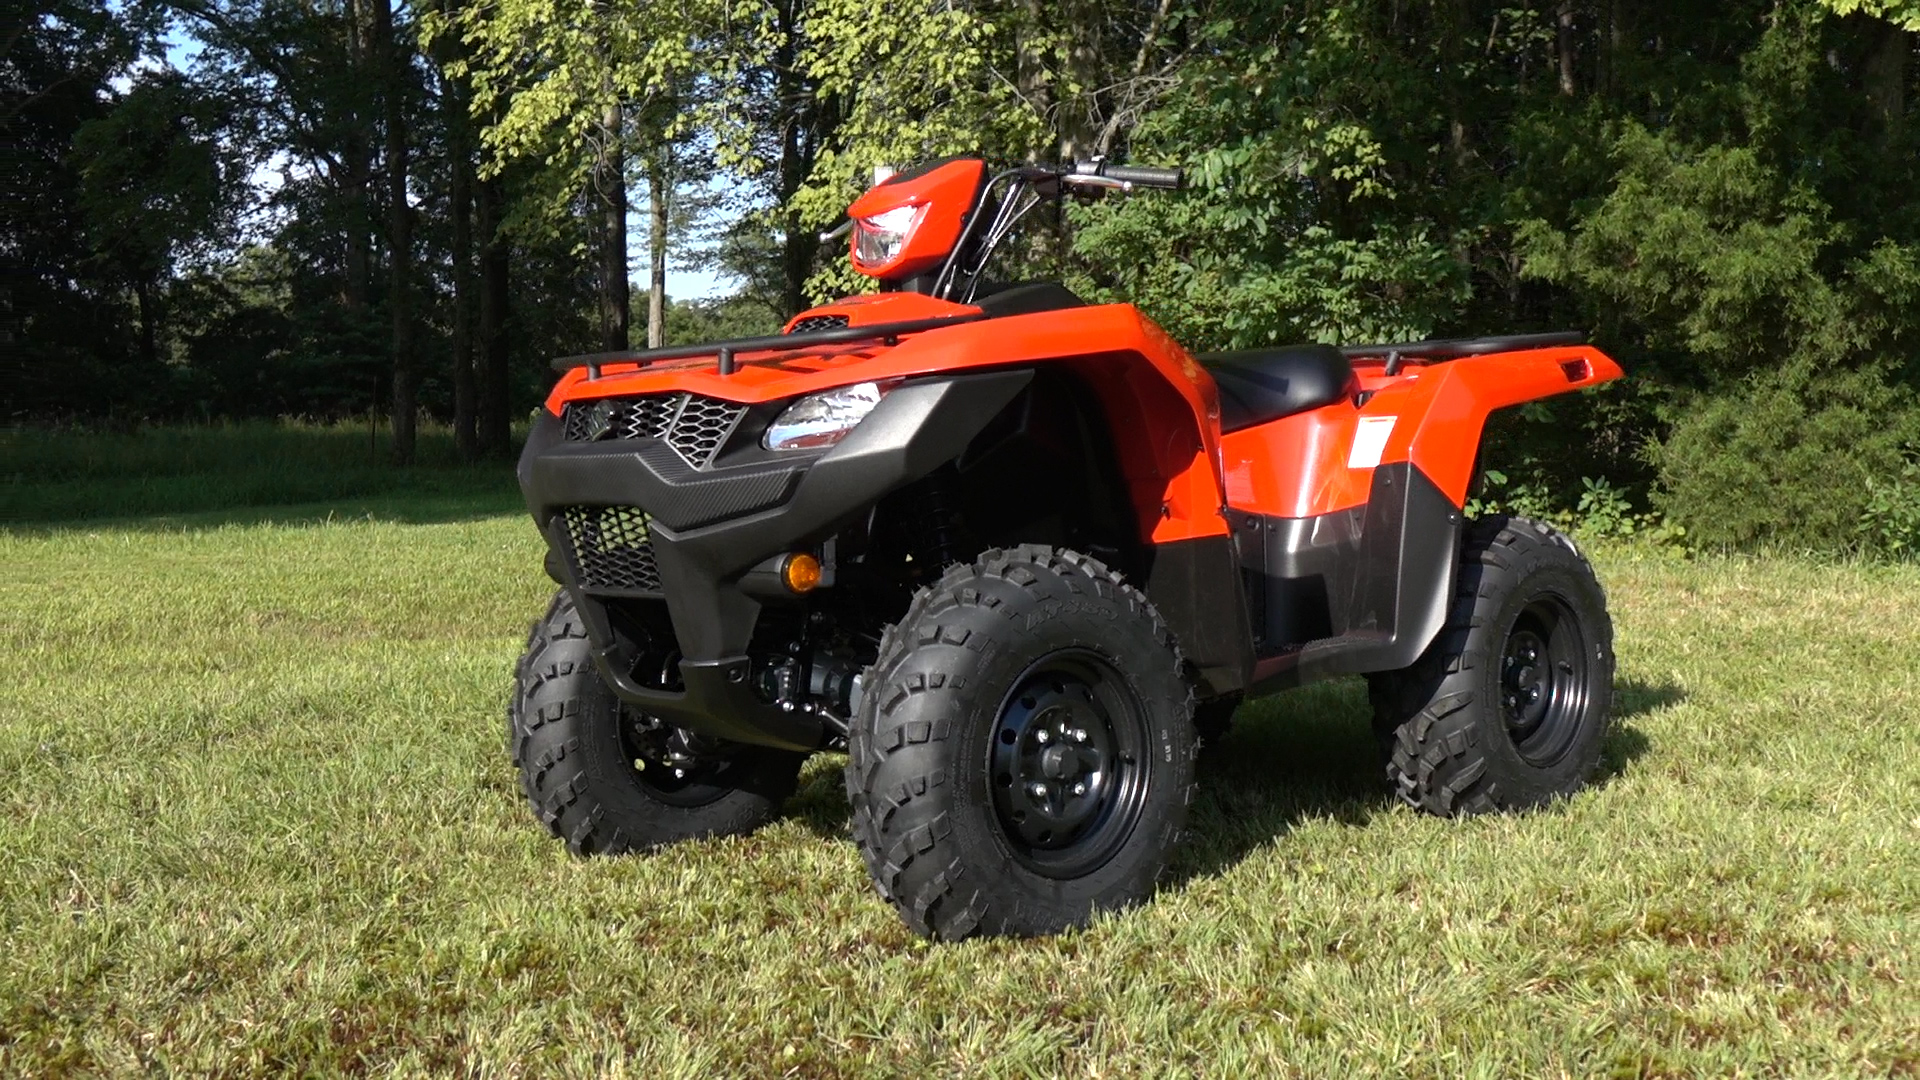 2019 Suzuki KingQuad 500 Test Review: WITH VIDEO